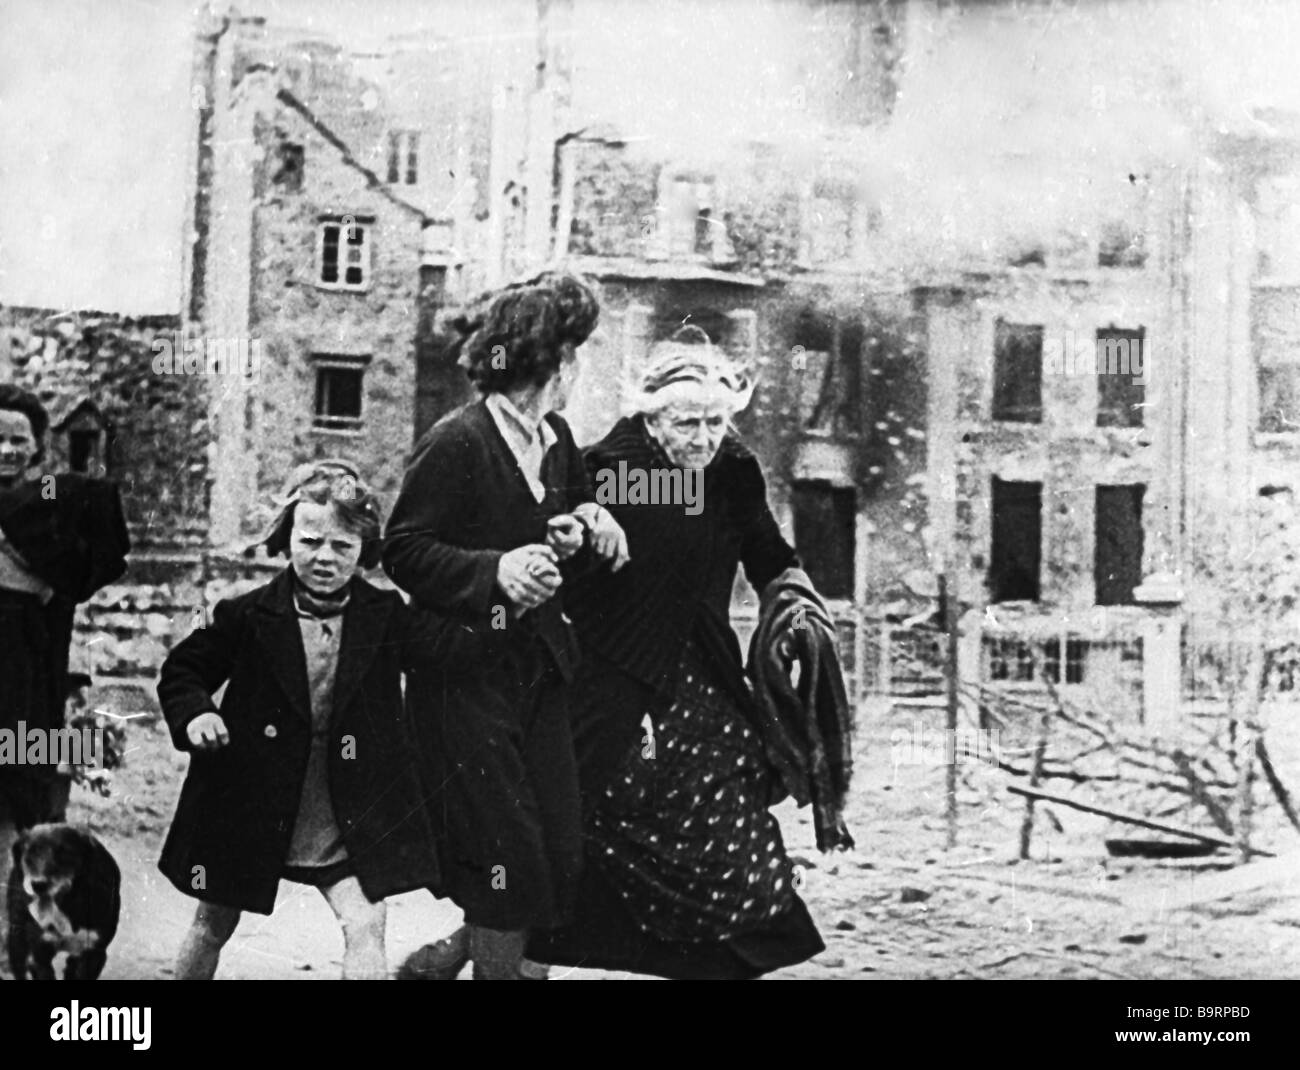 People escaping the destroyed house Fragment of Alexander Medvedkin s documentary Mind Versus Insanity - Stock Image